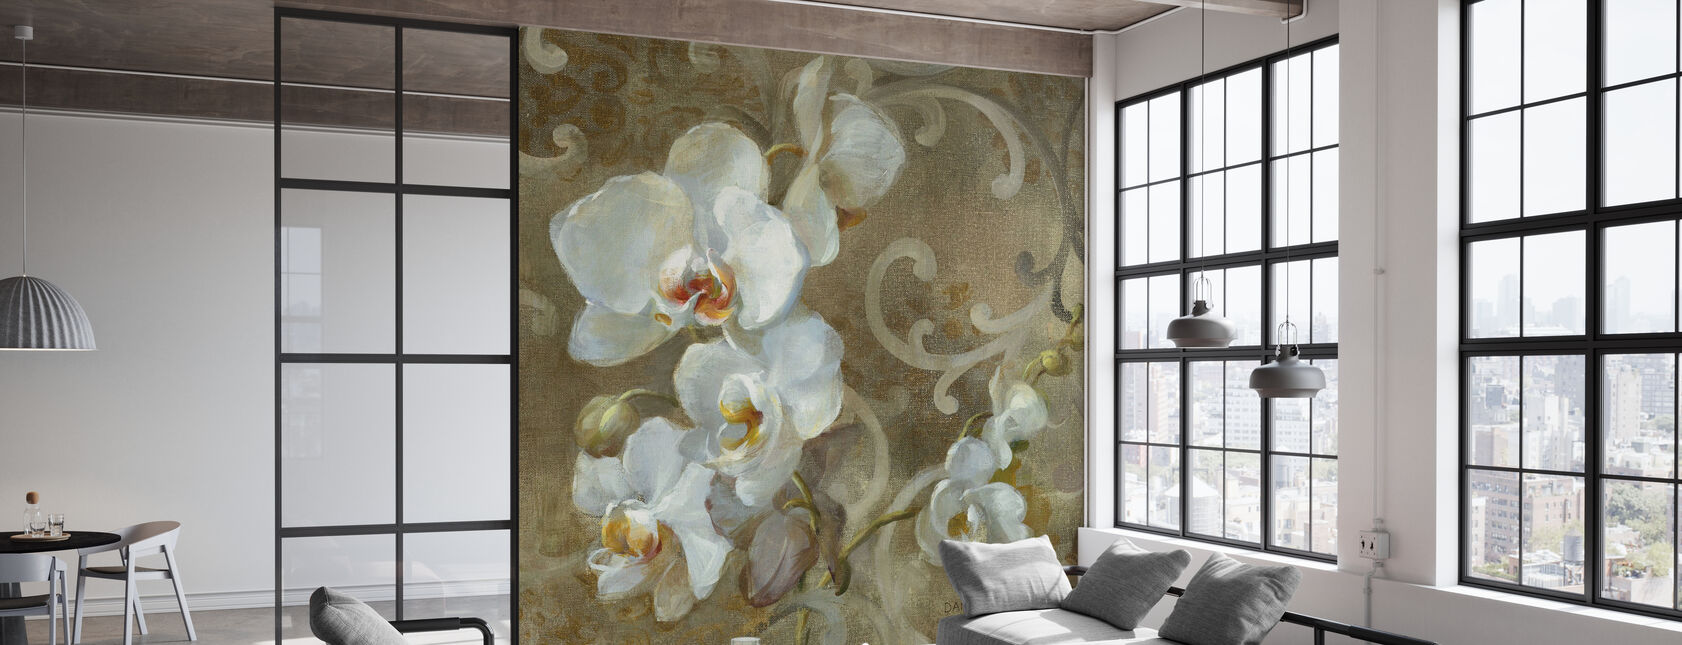 White Orchid Square - Wallpaper - Office